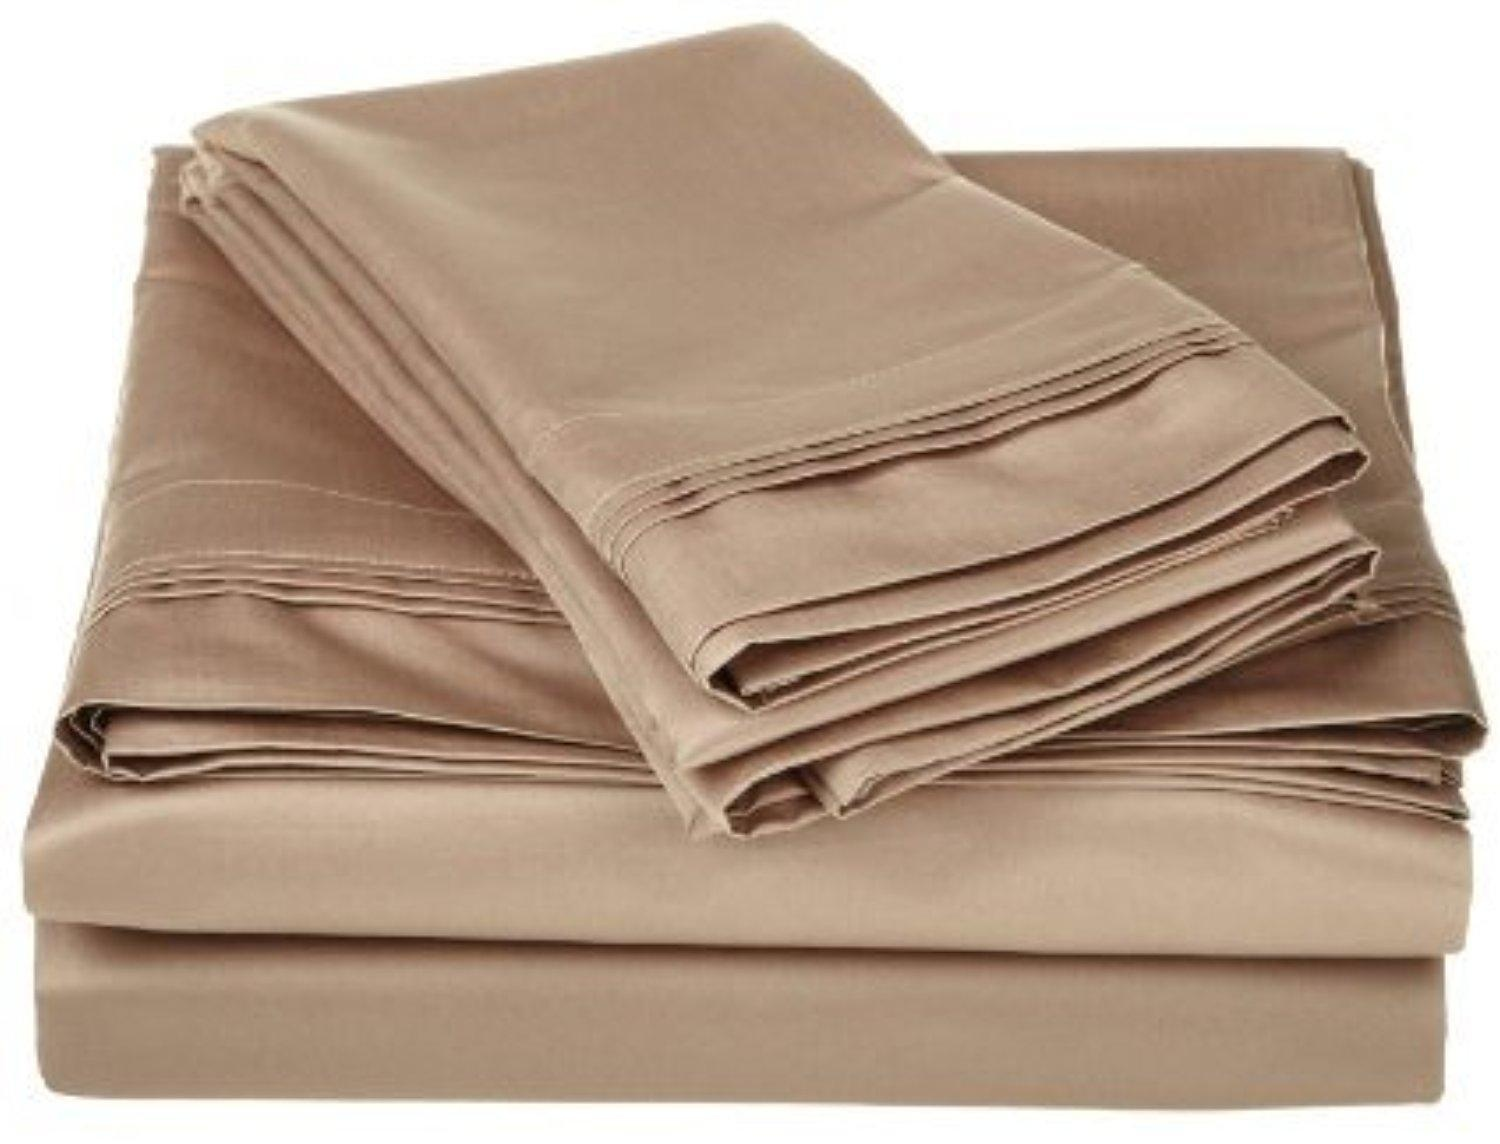 Extra deep pocket queen fitted sheets - Singh S Textiles 600 Thread Count 1pcs Fitted Sheet 18inch Extra Deep Pocket Queen